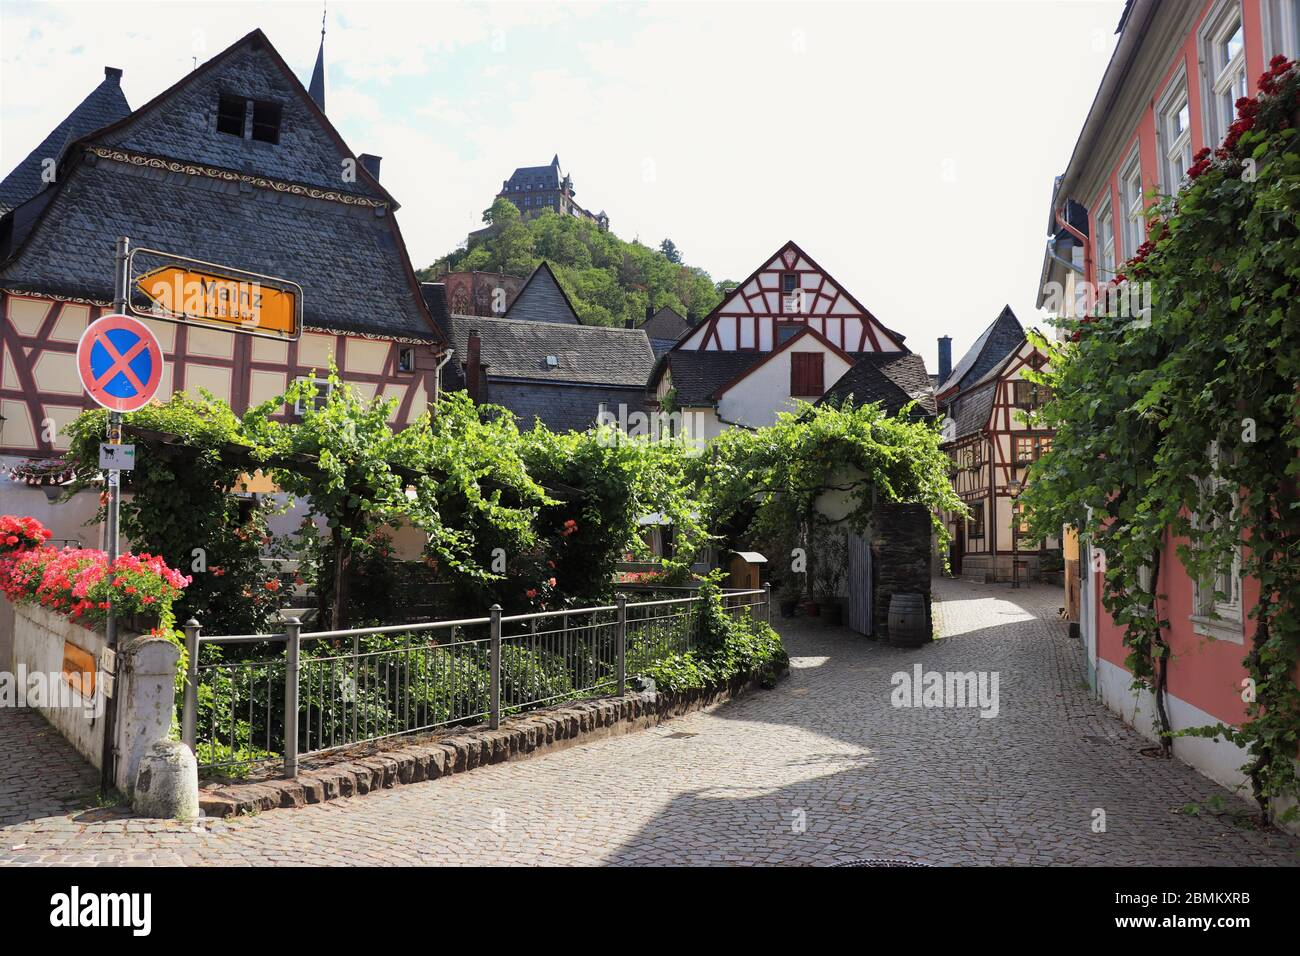 The Traditional German Town of Bacharach Am Rhein, Germany Stock Photo